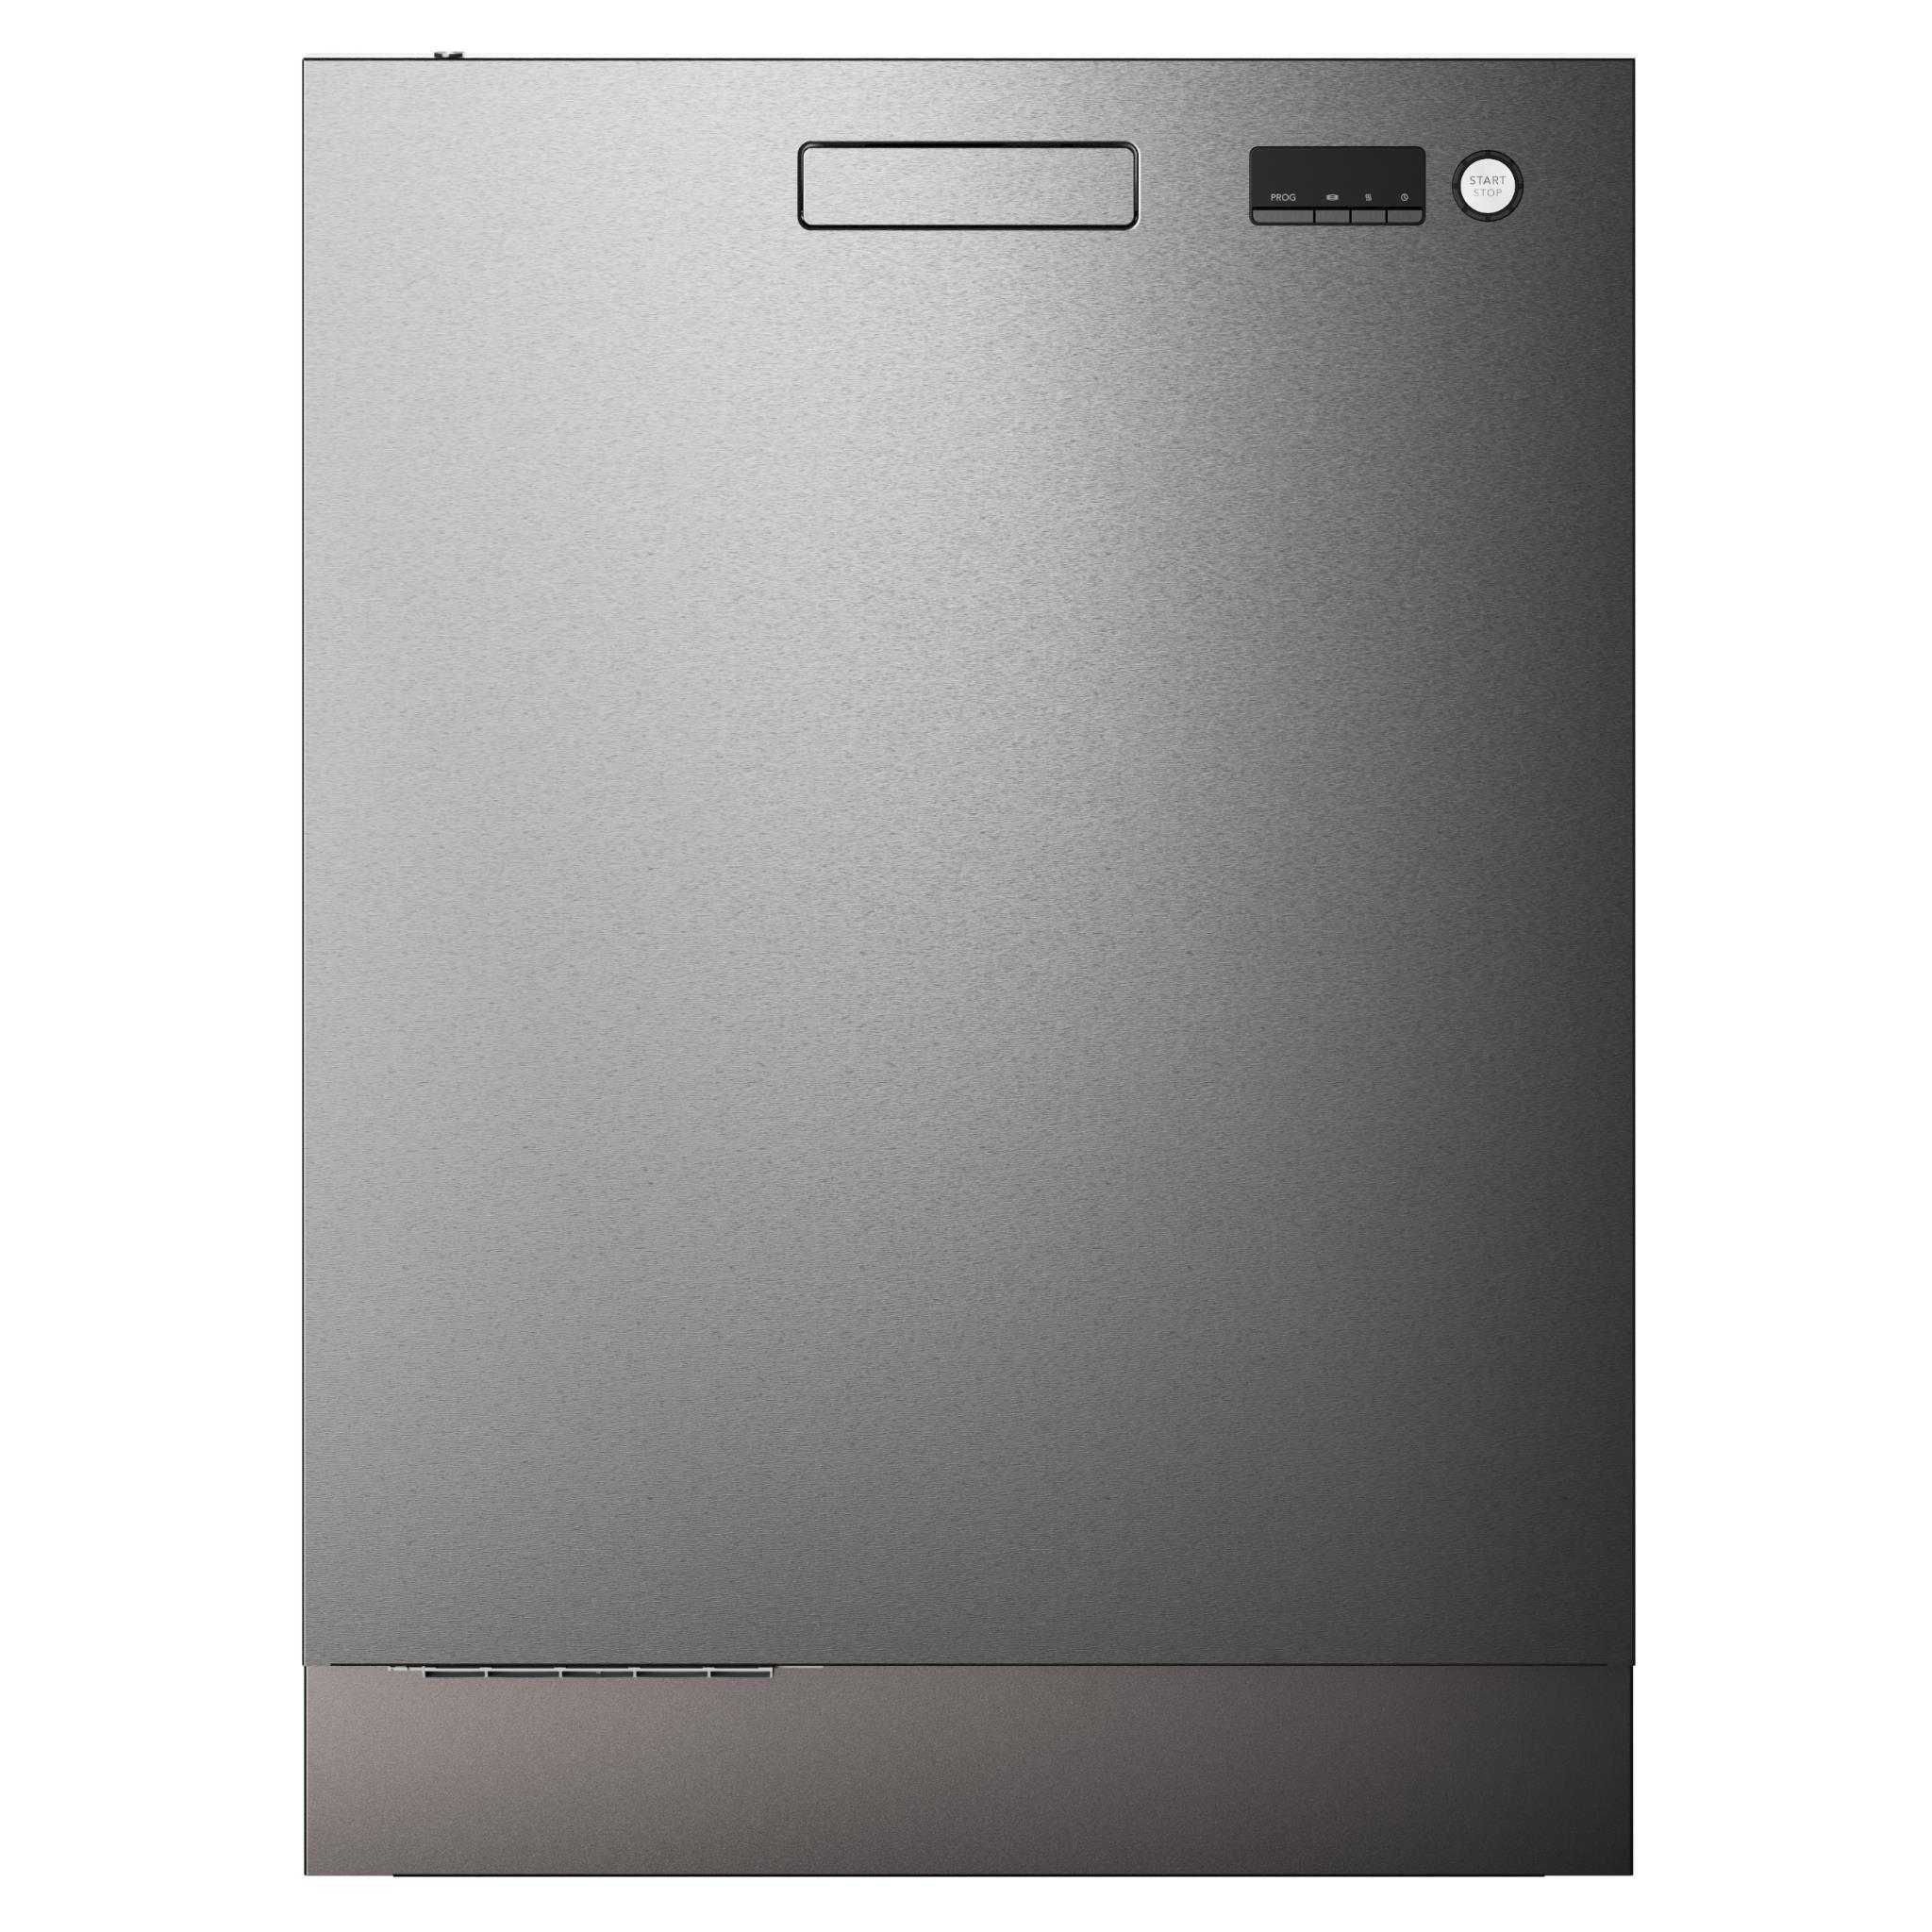 ASKO DBI253S 15 Place Setting Built-In Dishwasher (S/Steel)